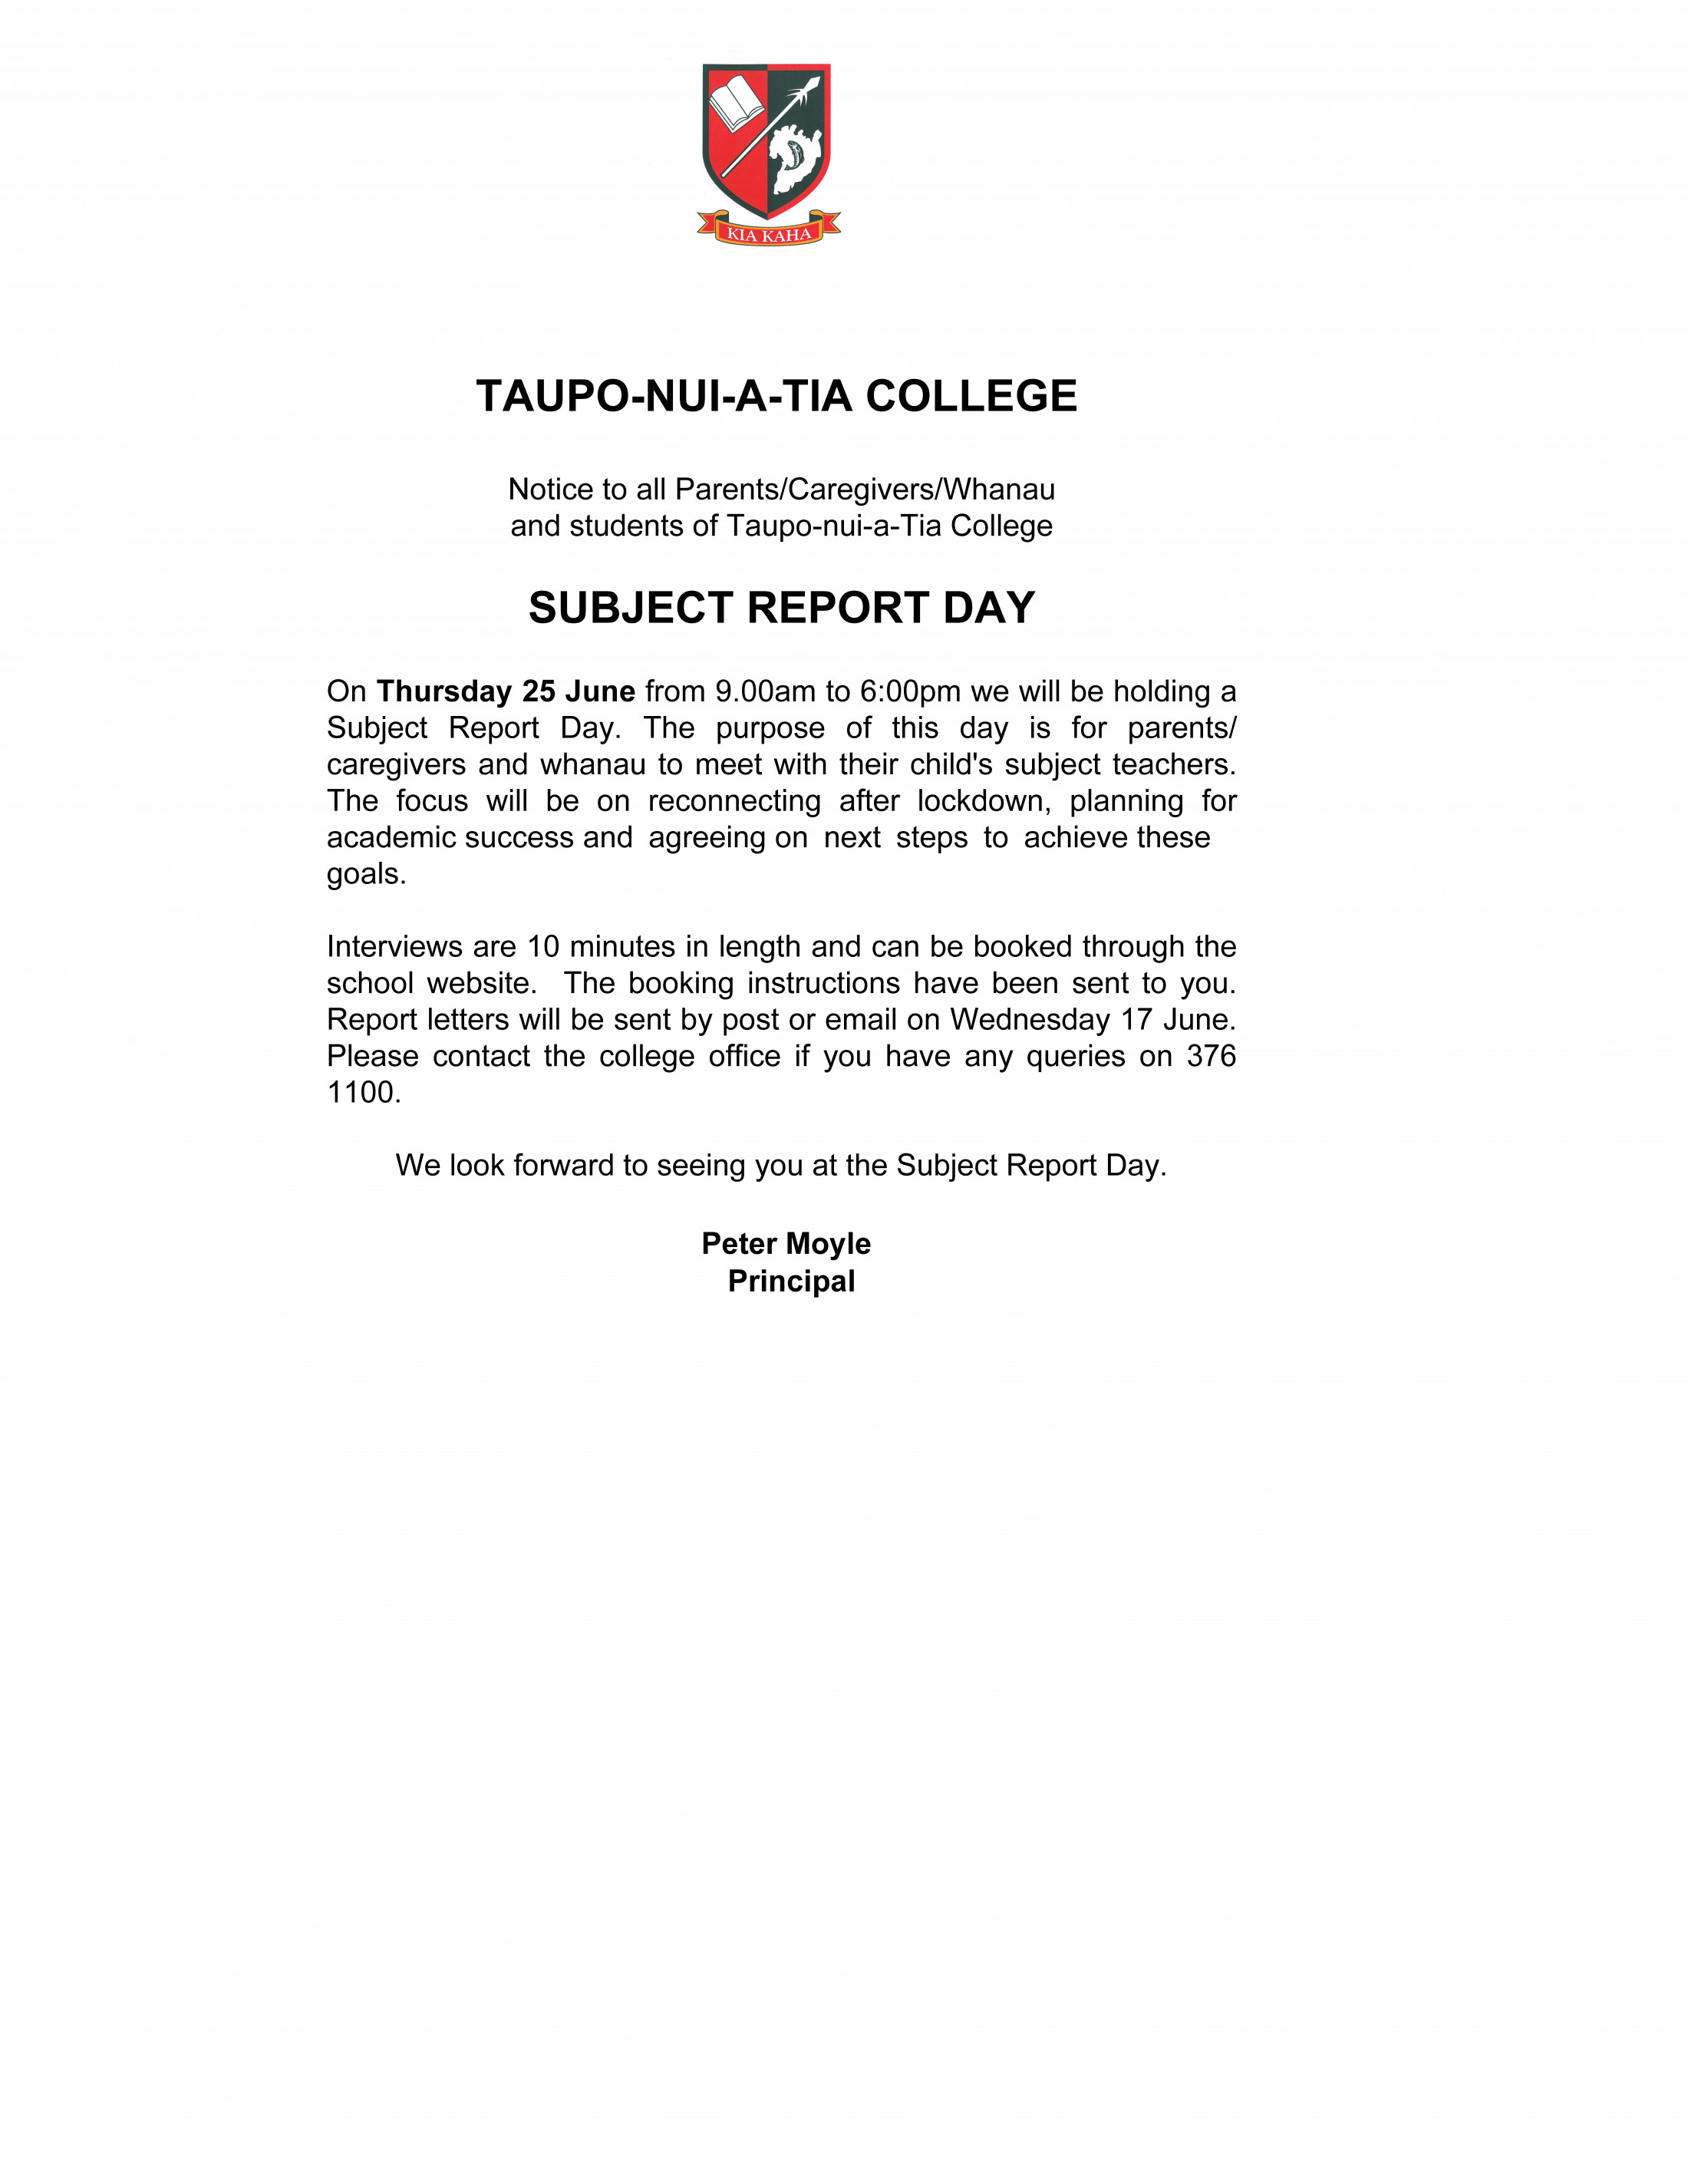 Subject Report Day